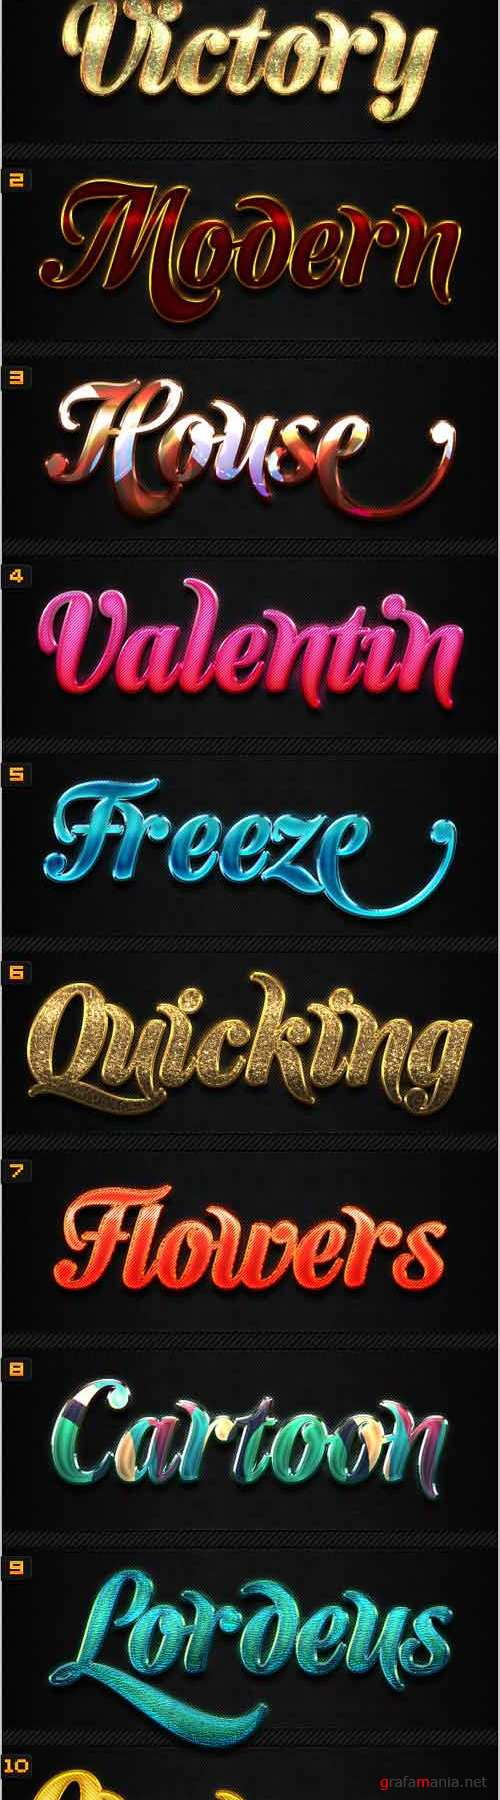 12 New Awesome Text Effect Styles